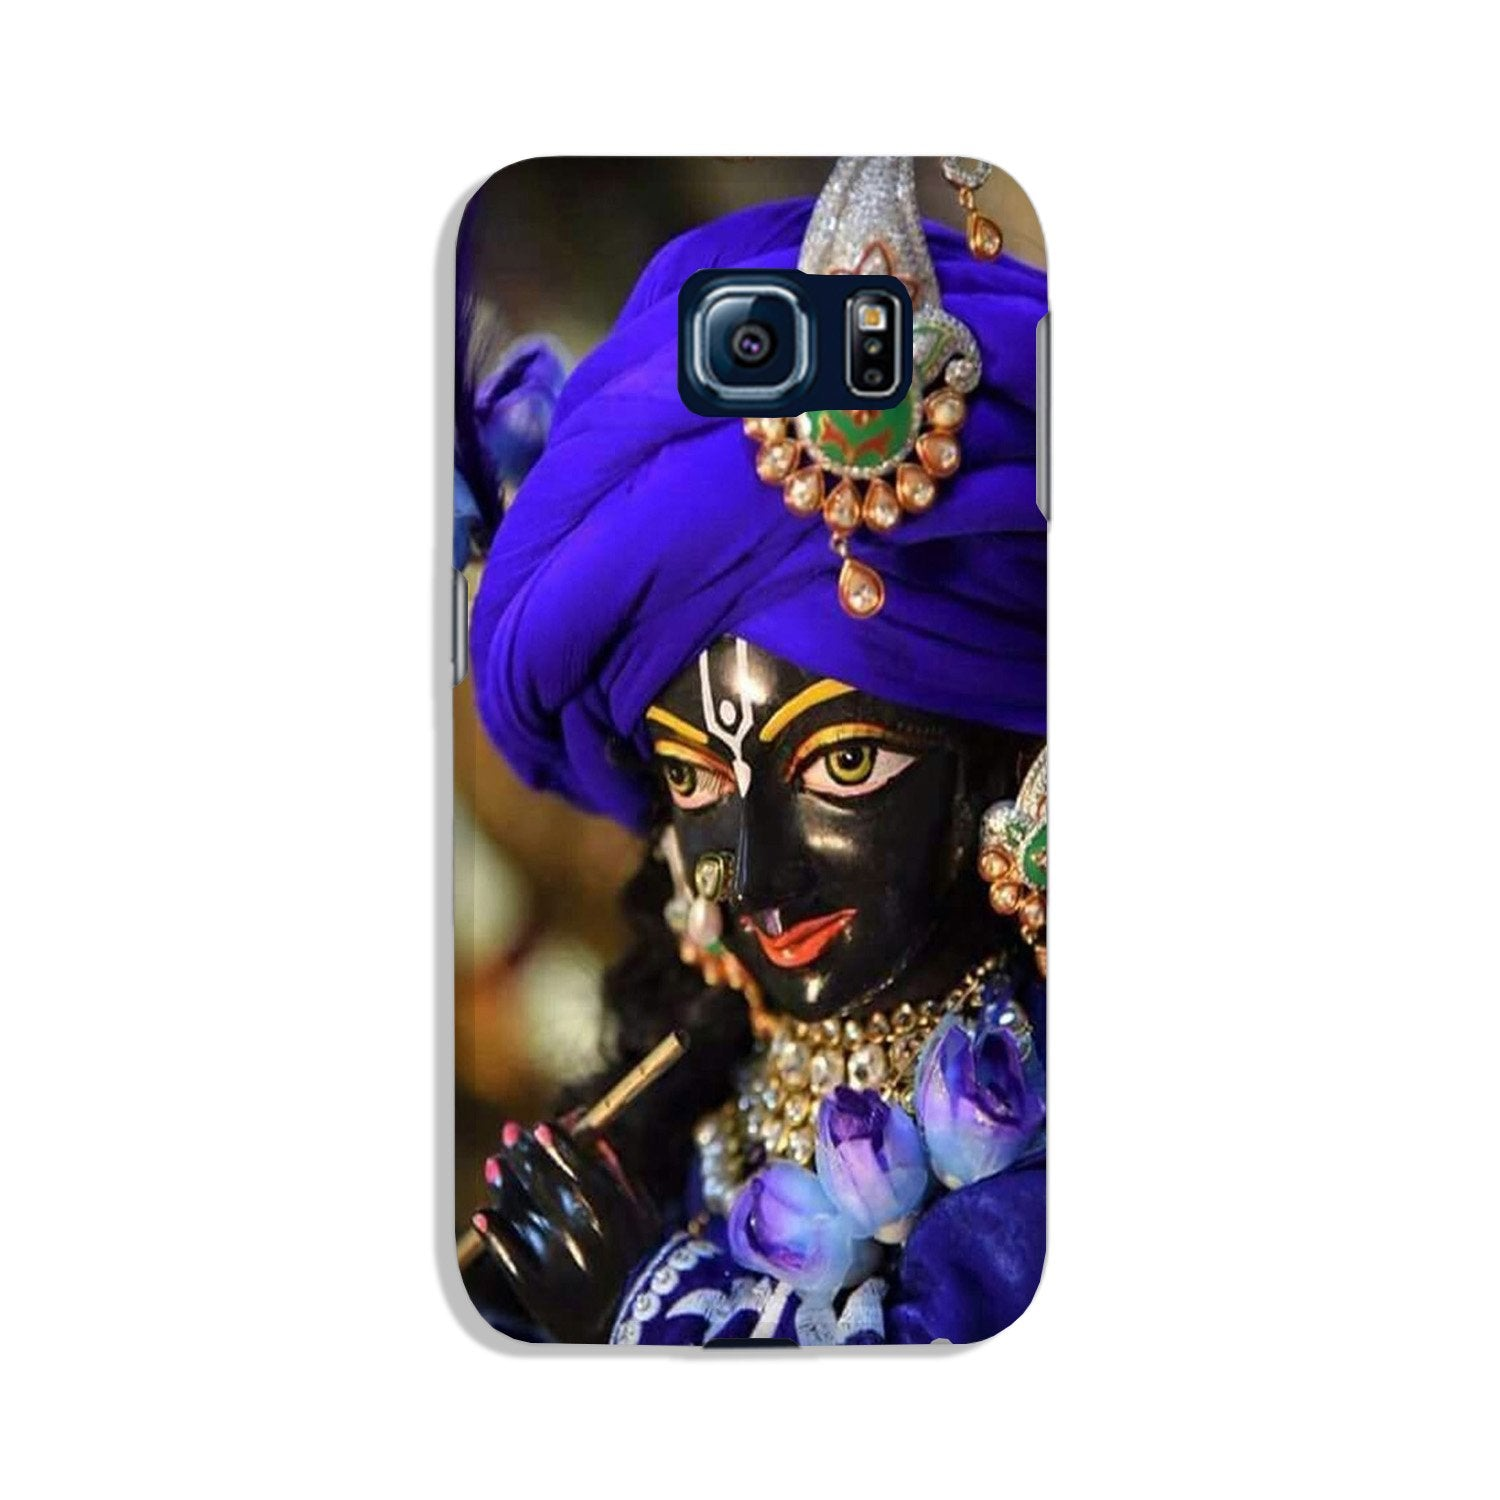 Lord Krishna4 Case for Galaxy S6